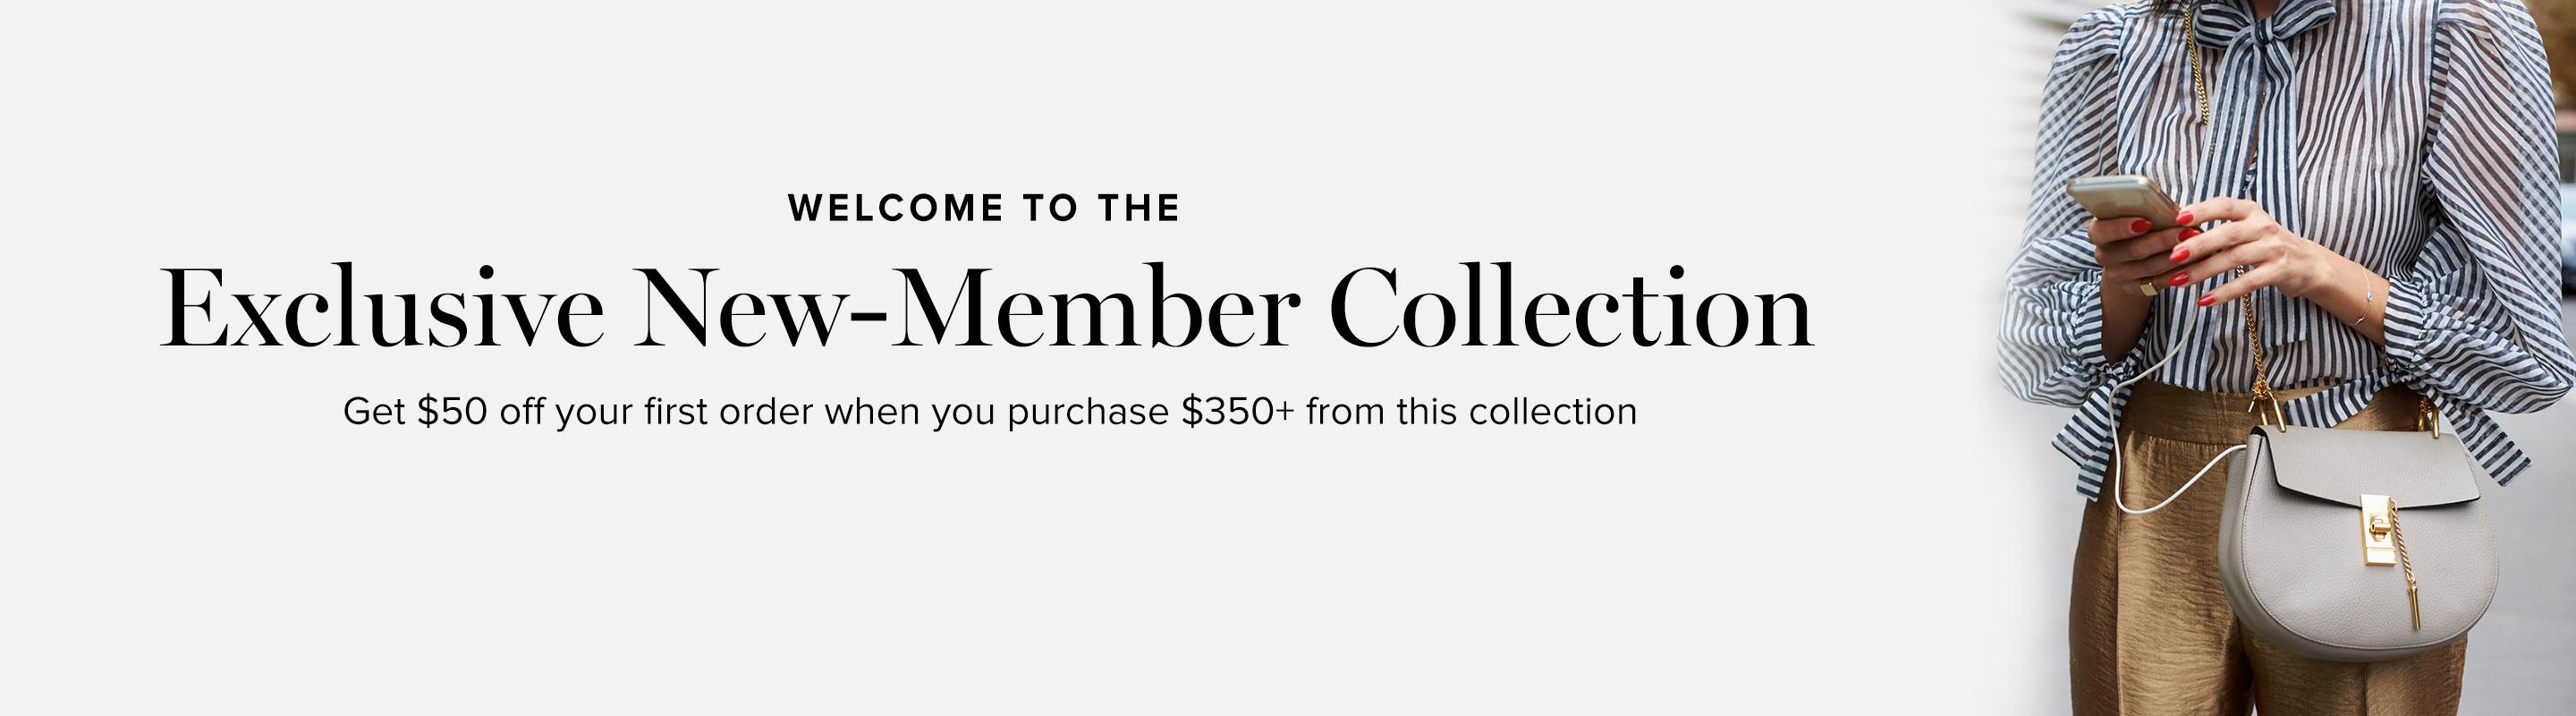 Exclusive New-Member Collection